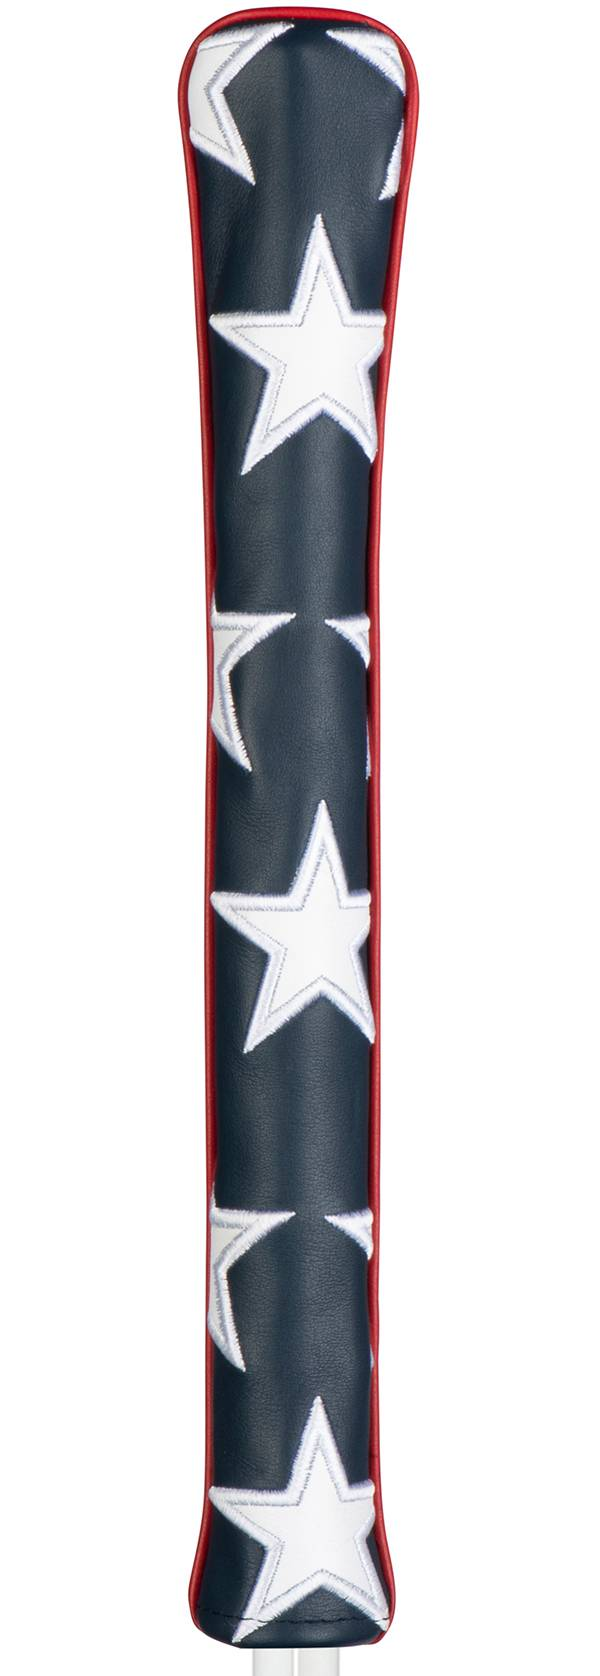 Titleist Stars & Stripes Leather Alignment Stick Headcover product image